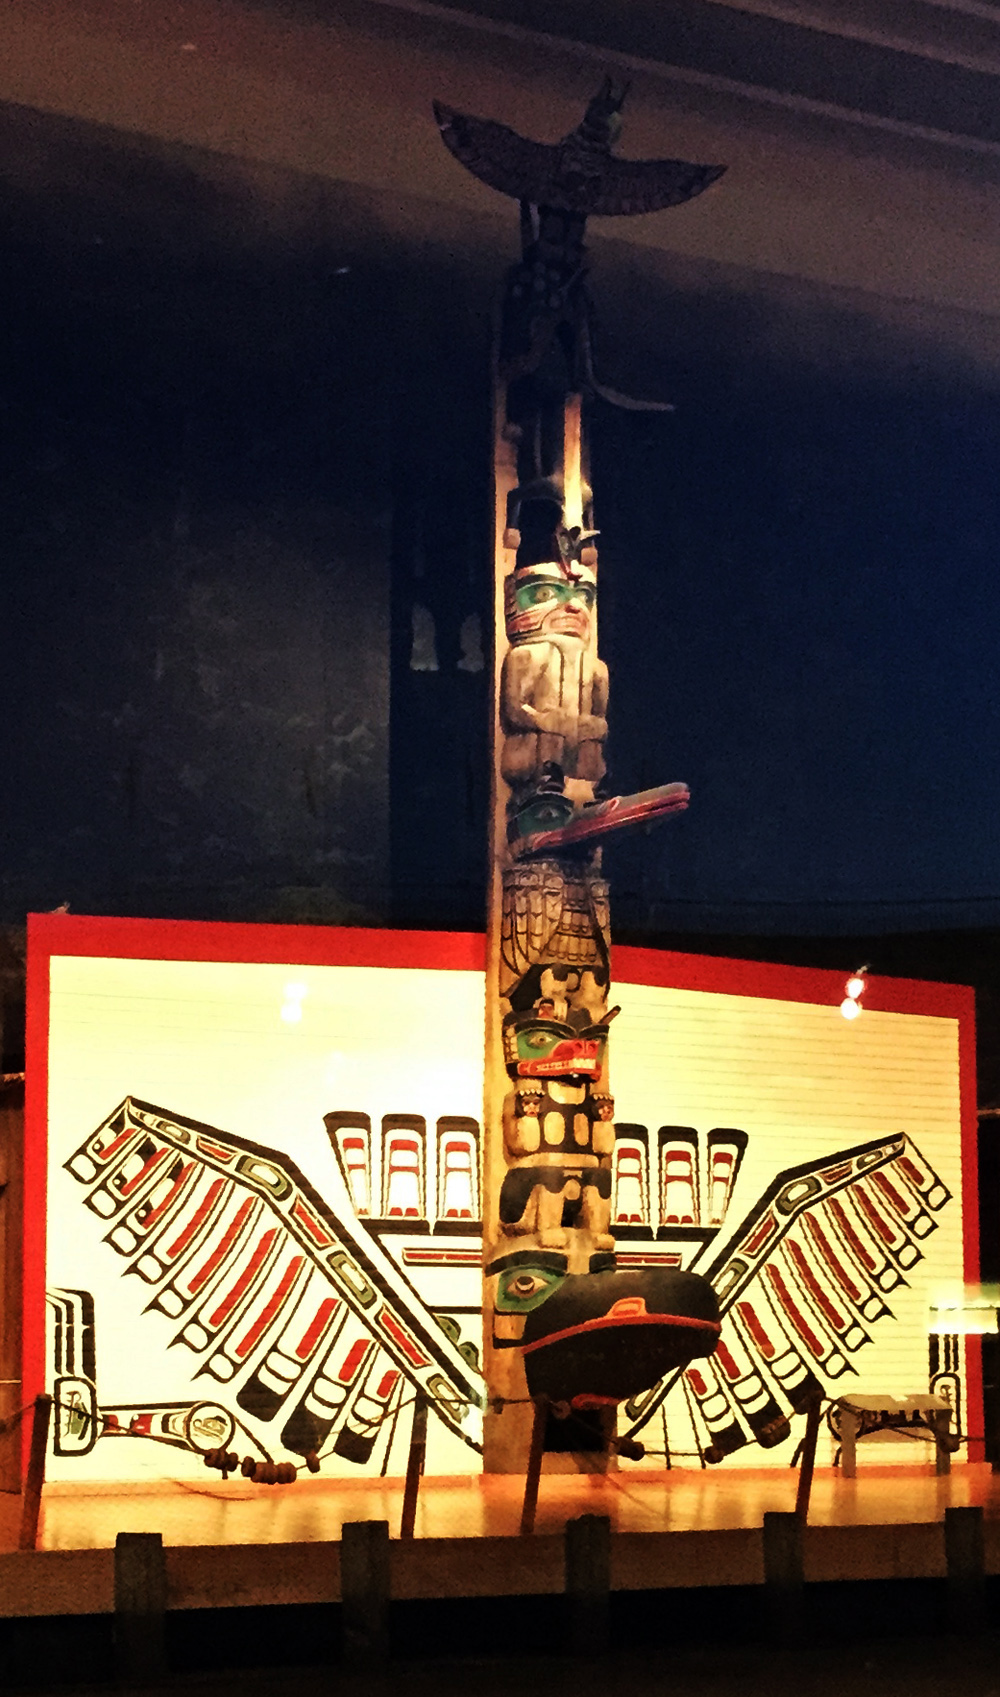 Totems within the Grand Hall